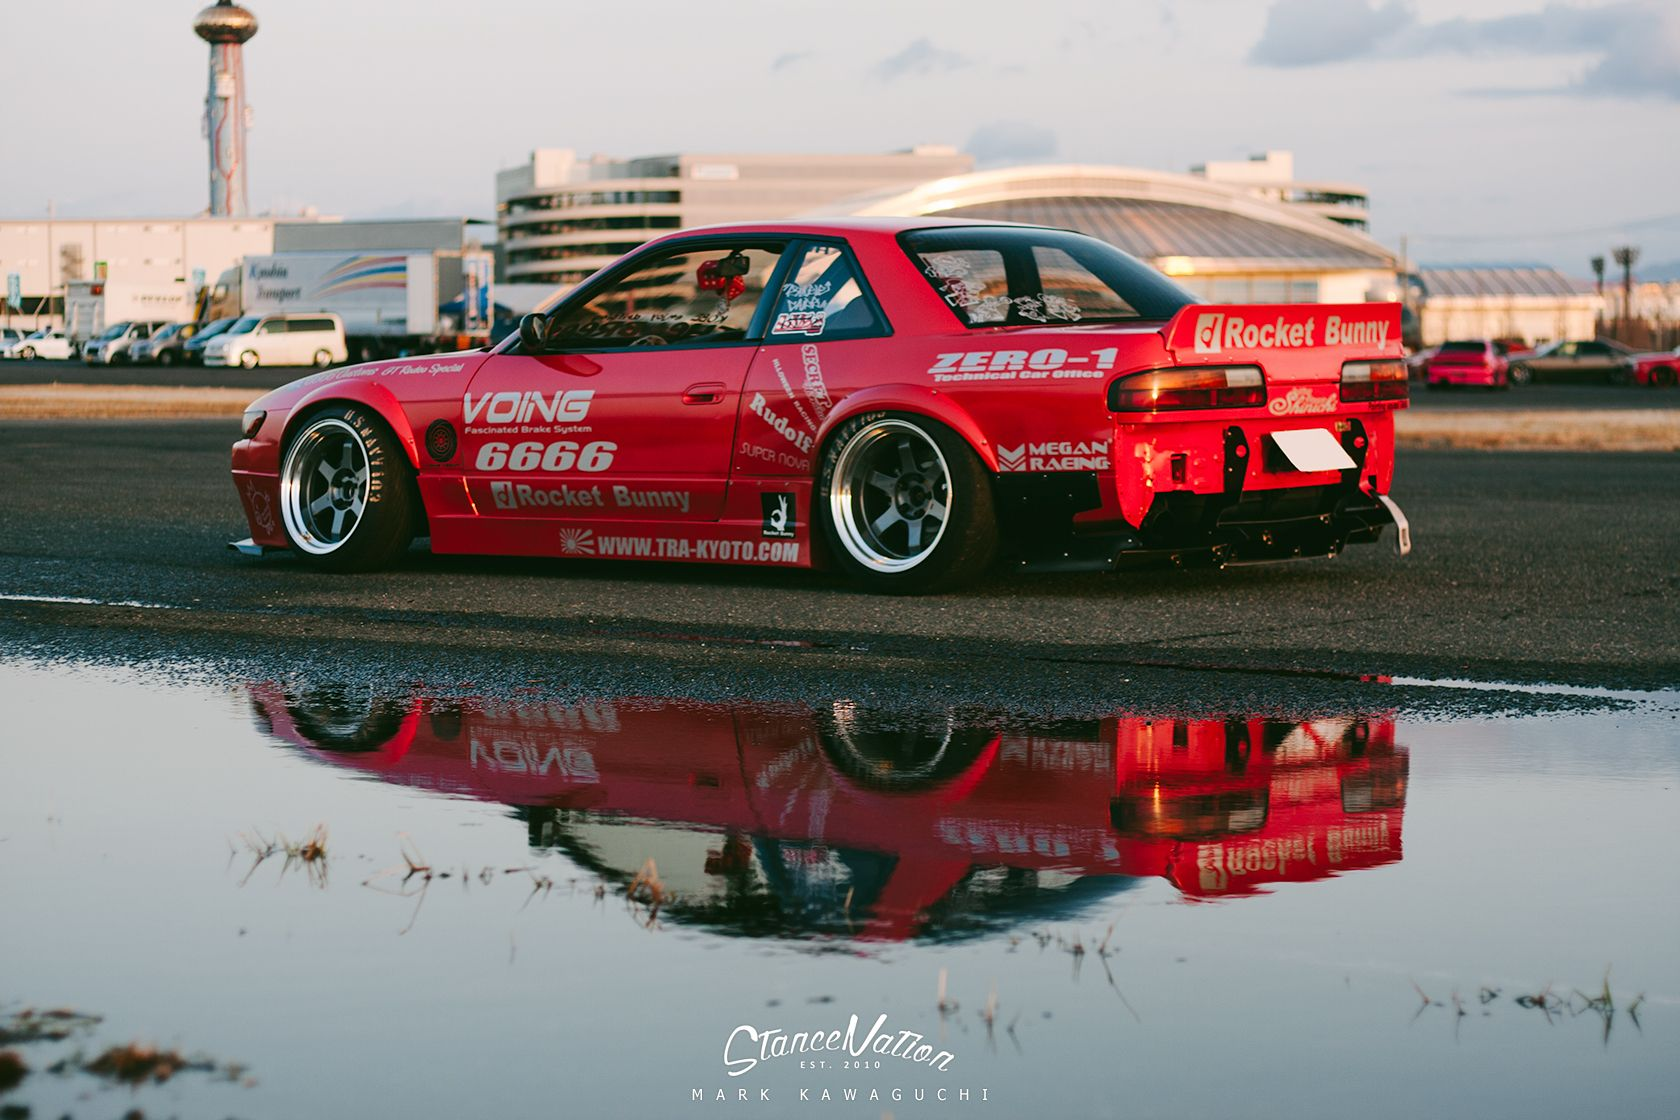 Exceptionnel Of All Of The Drift Cars Available On The Japanese Market, The Nissan Silvia  Has Always Been A Driver Favorite. Its Body Styling Never Seems To Grow Old,